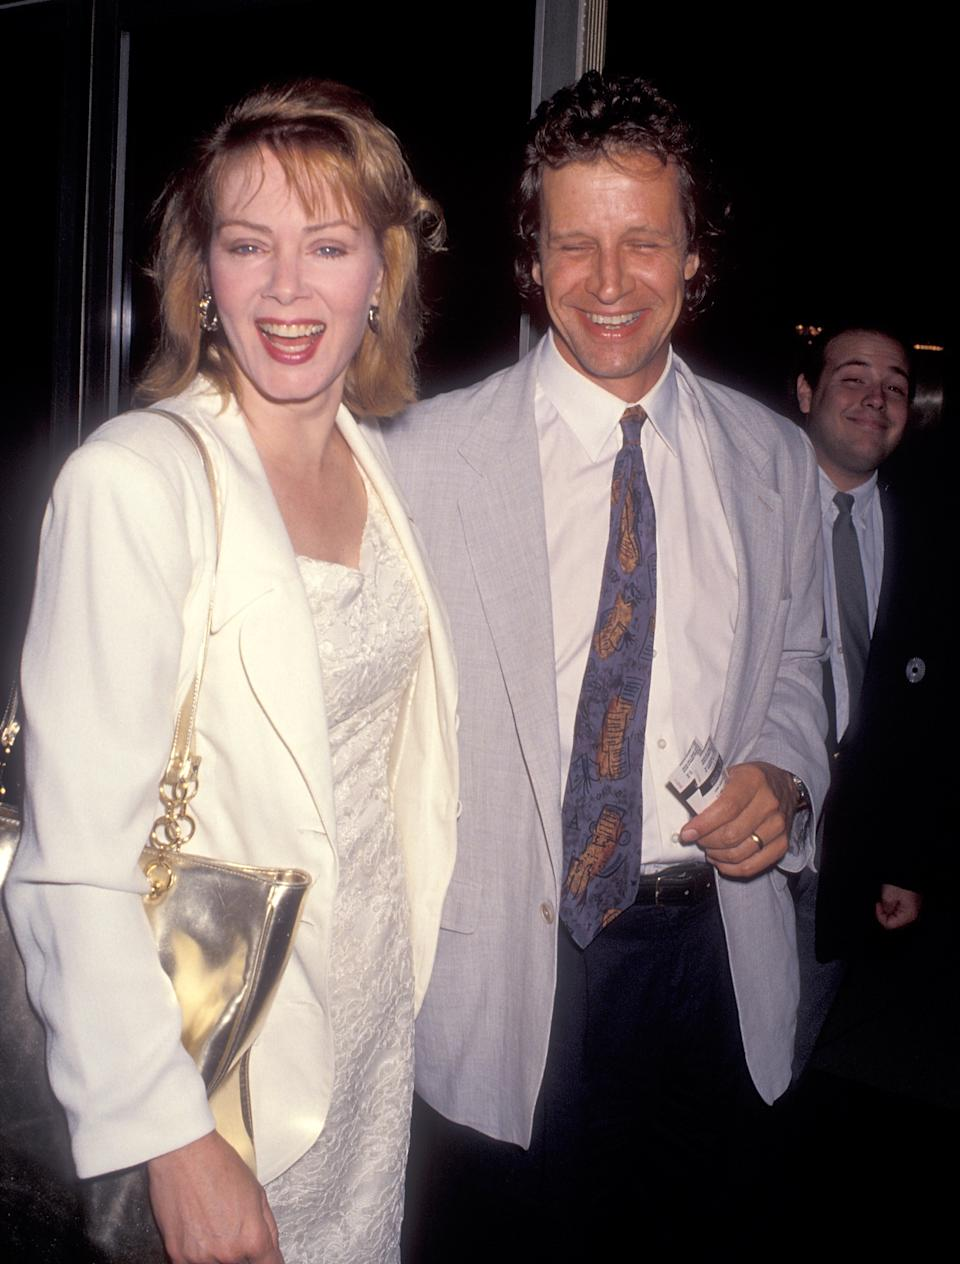 The couple, who met while starring in Designing Women, in 1993. (Photo: Ron Galella, Ltd./Ron Galella Collection via Getty Images)